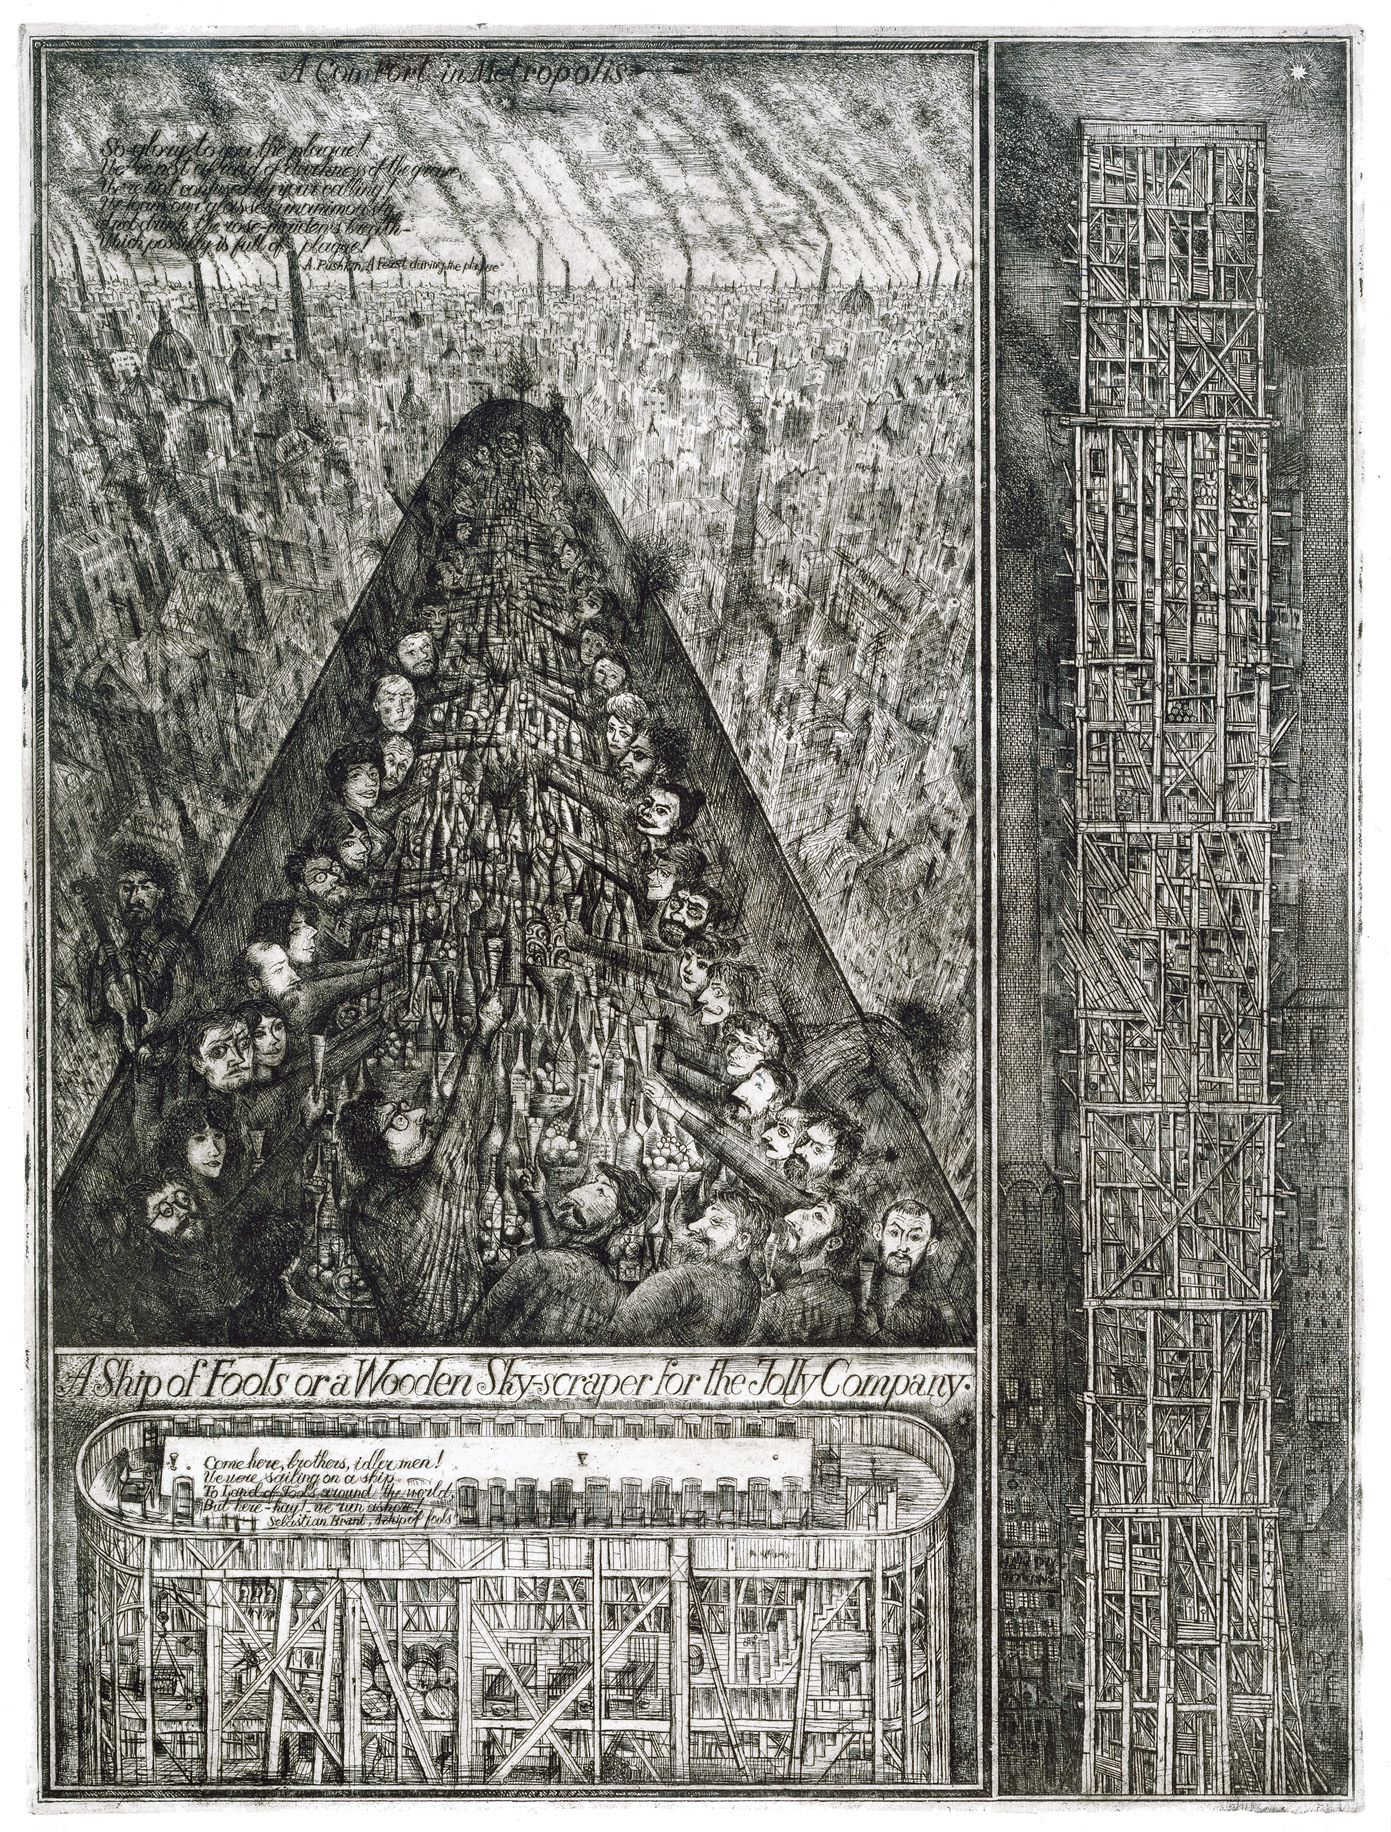 "Alexander Brodsky and Ilya Utkin: ""Ship of Fools or a Wooden Skyscraper for the Jolly Company"", 1988-90. Etching, 74 x 55 cm. From ""Comfort in the Metropolis"", Sinkenchiku Competition 1989. Courtesy of Feldman Gallery, NY."